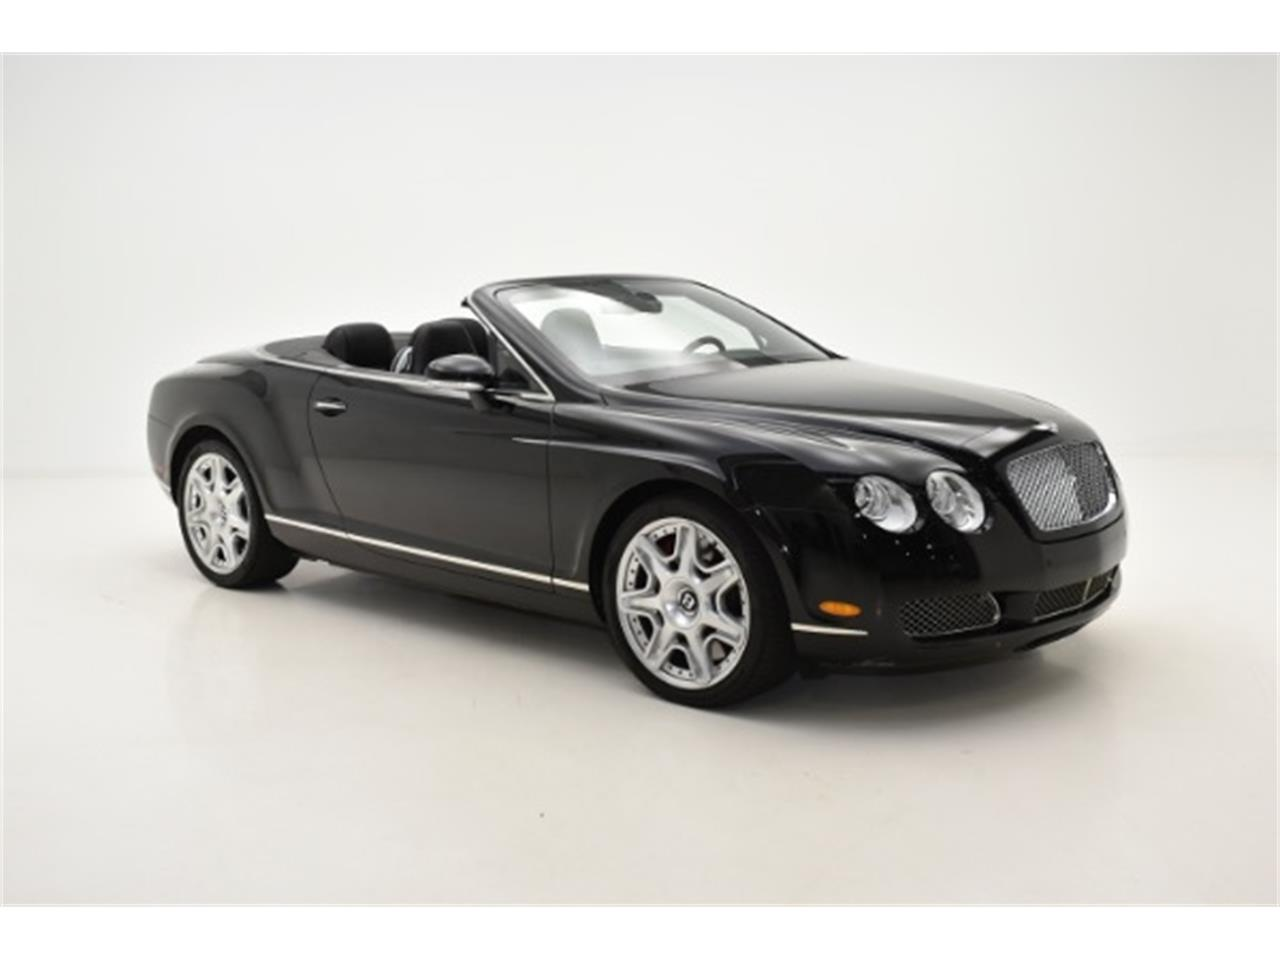 Large Picture of 2009 Continental GTC Mulliner located in New York - $85,000.00 Offered by Champion Motors International - L3NN